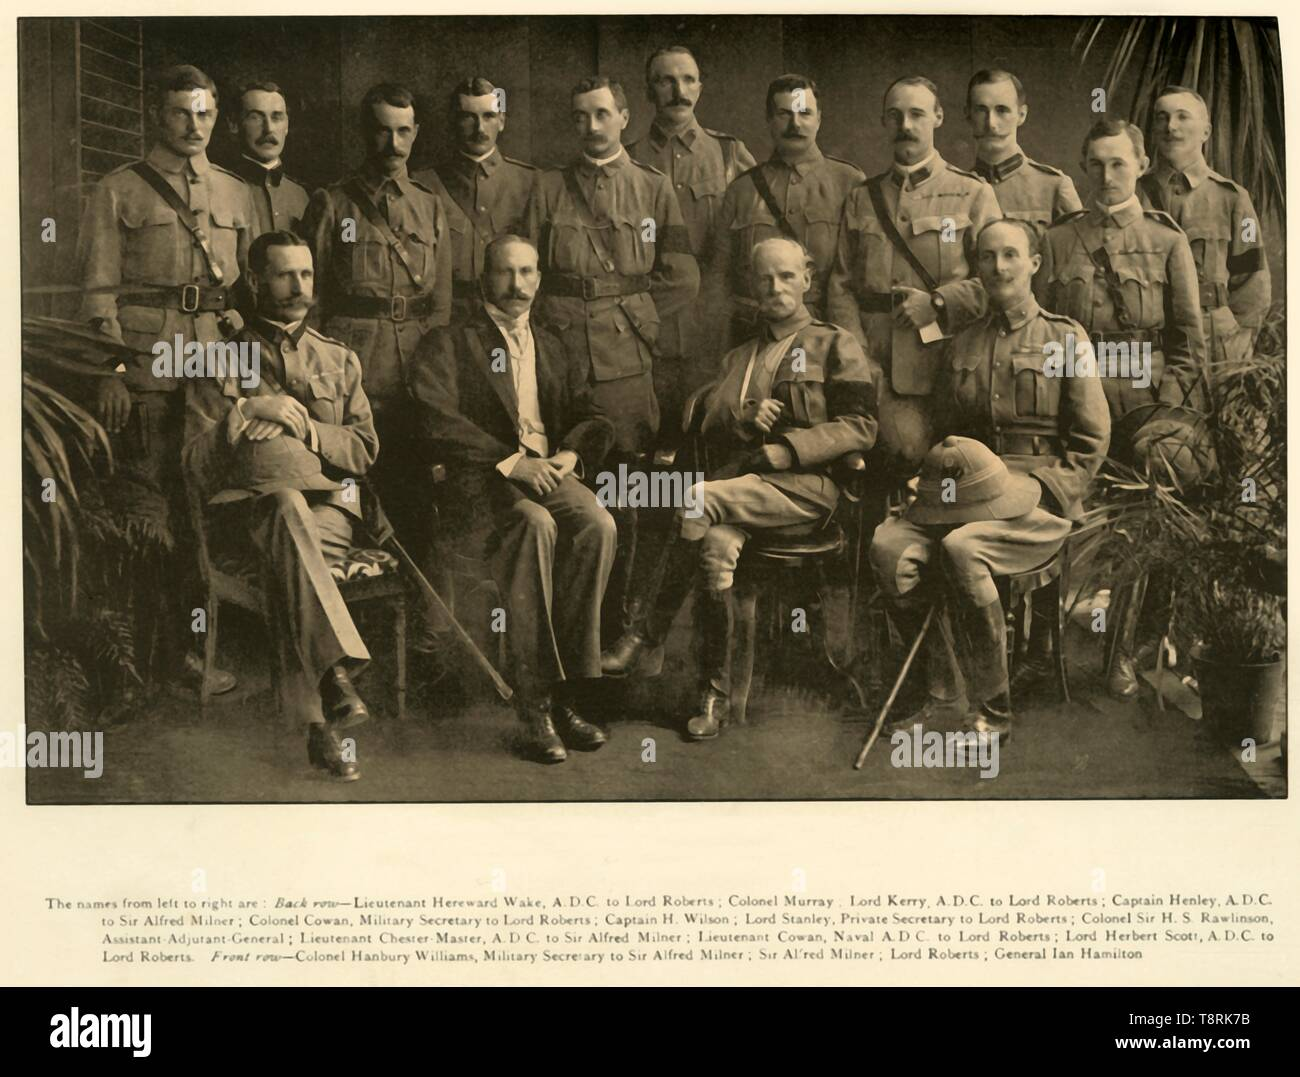 'Lord Roberts and Sir Alfred Milner with their Personal Staffs', 1900, (1901).  Creator: Unknown. - Stock Image